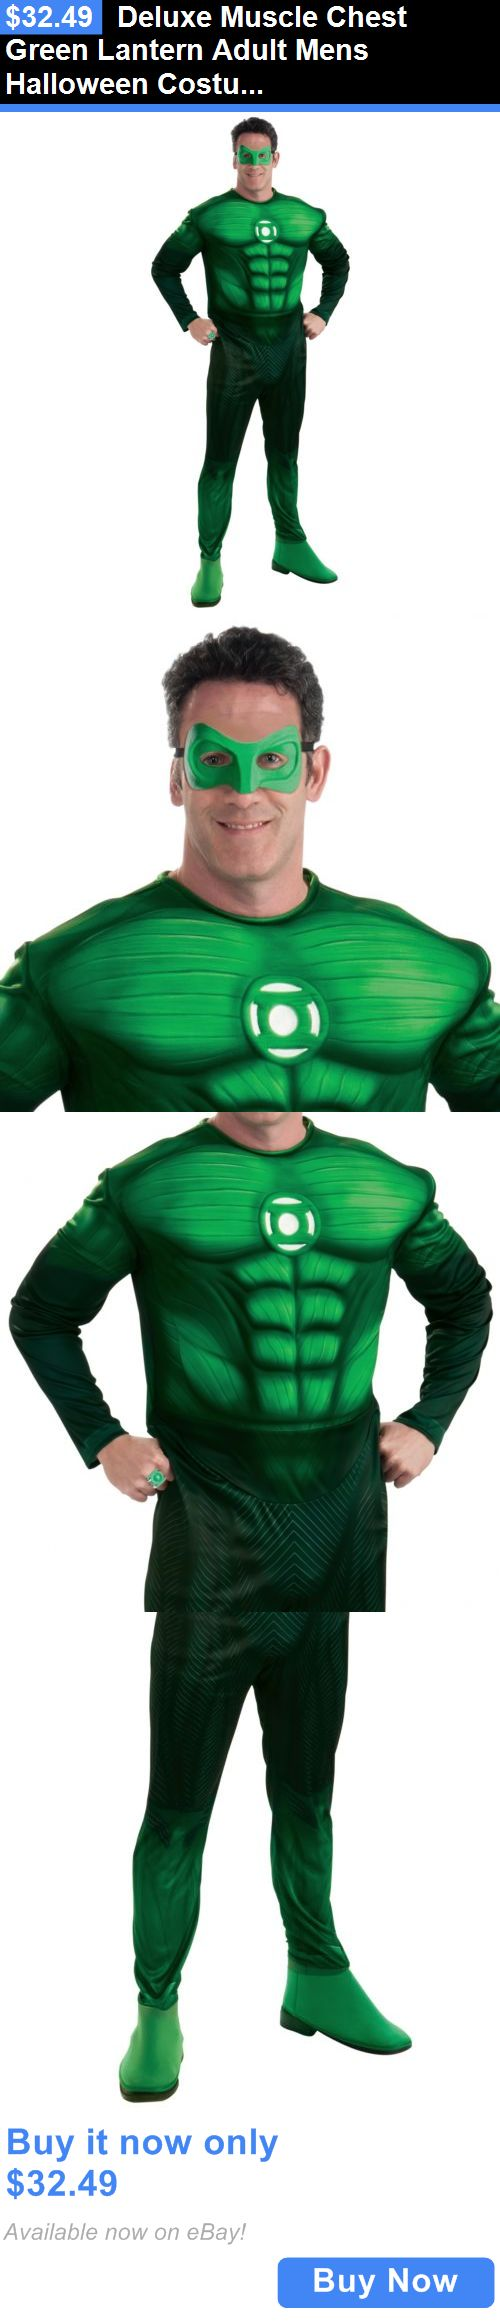 Men Costumes: Deluxe Muscle Chest Green Lantern Adult Mens Halloween Costume Std/Plus Size BUY IT NOW ONLY: $32.49